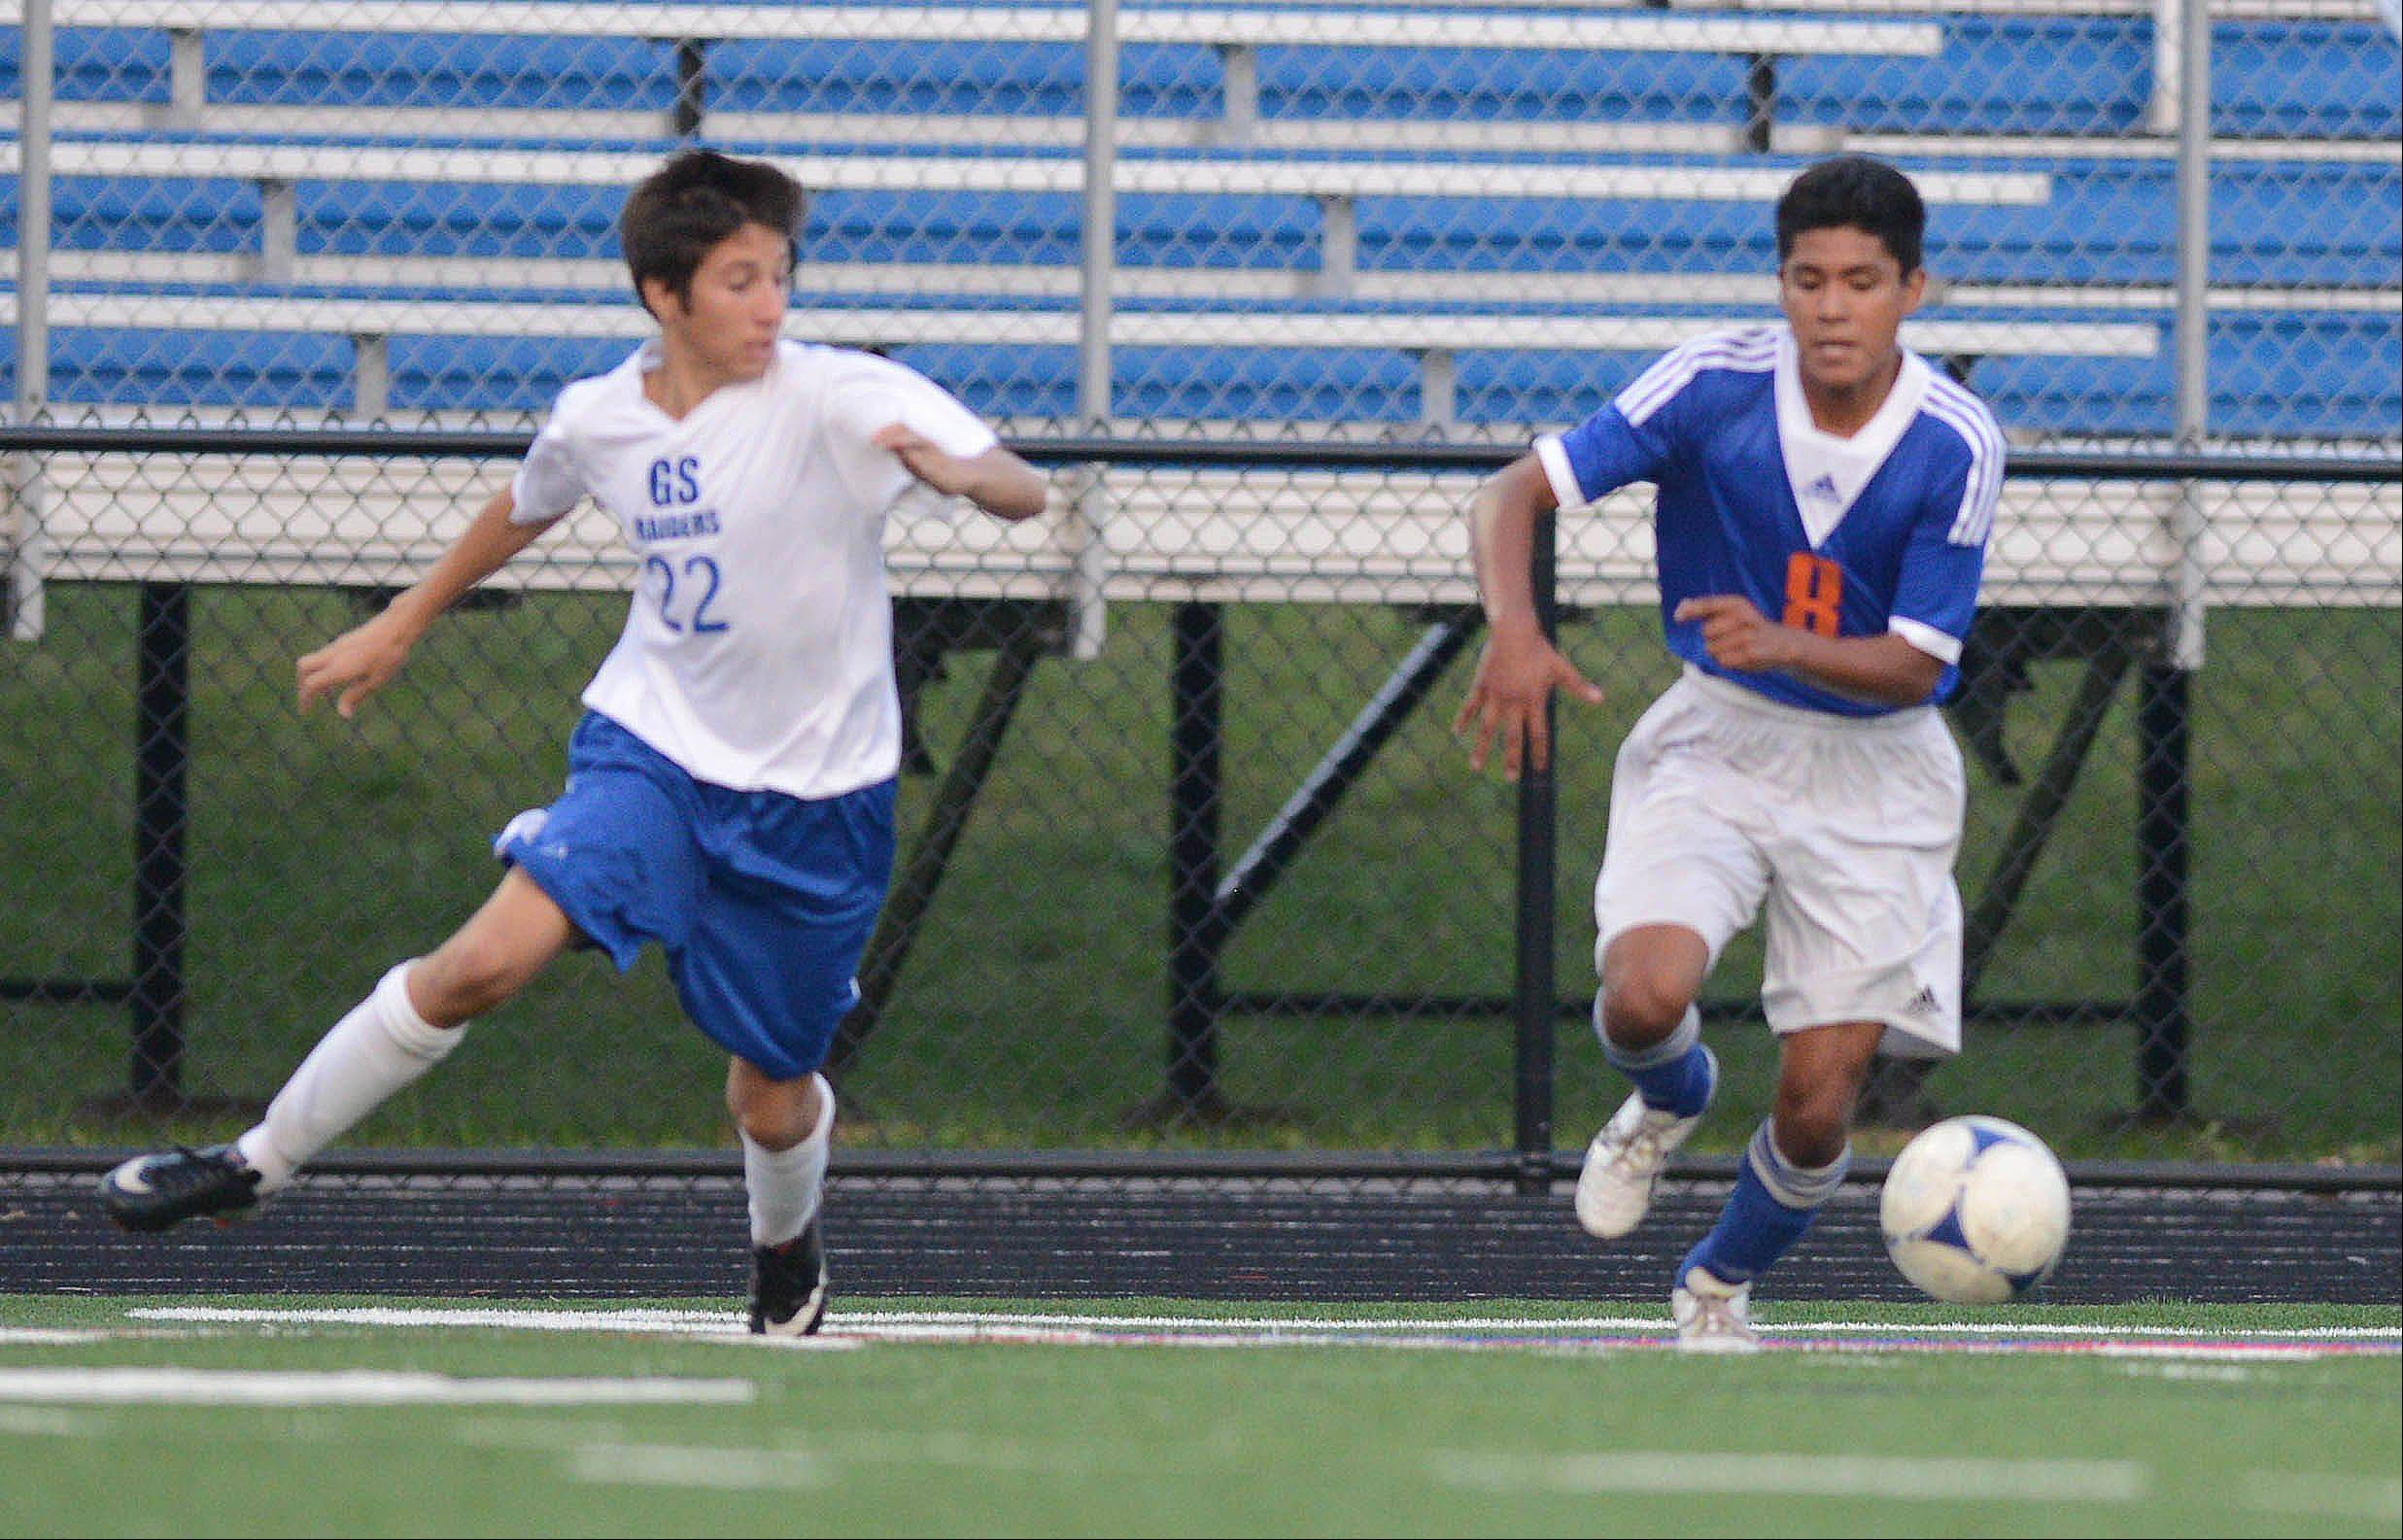 Matt Waters of Glenbard South and David Ortega of Fenton vie for the ball during the Fenton at Glenbard South boys soccer game Thursday.